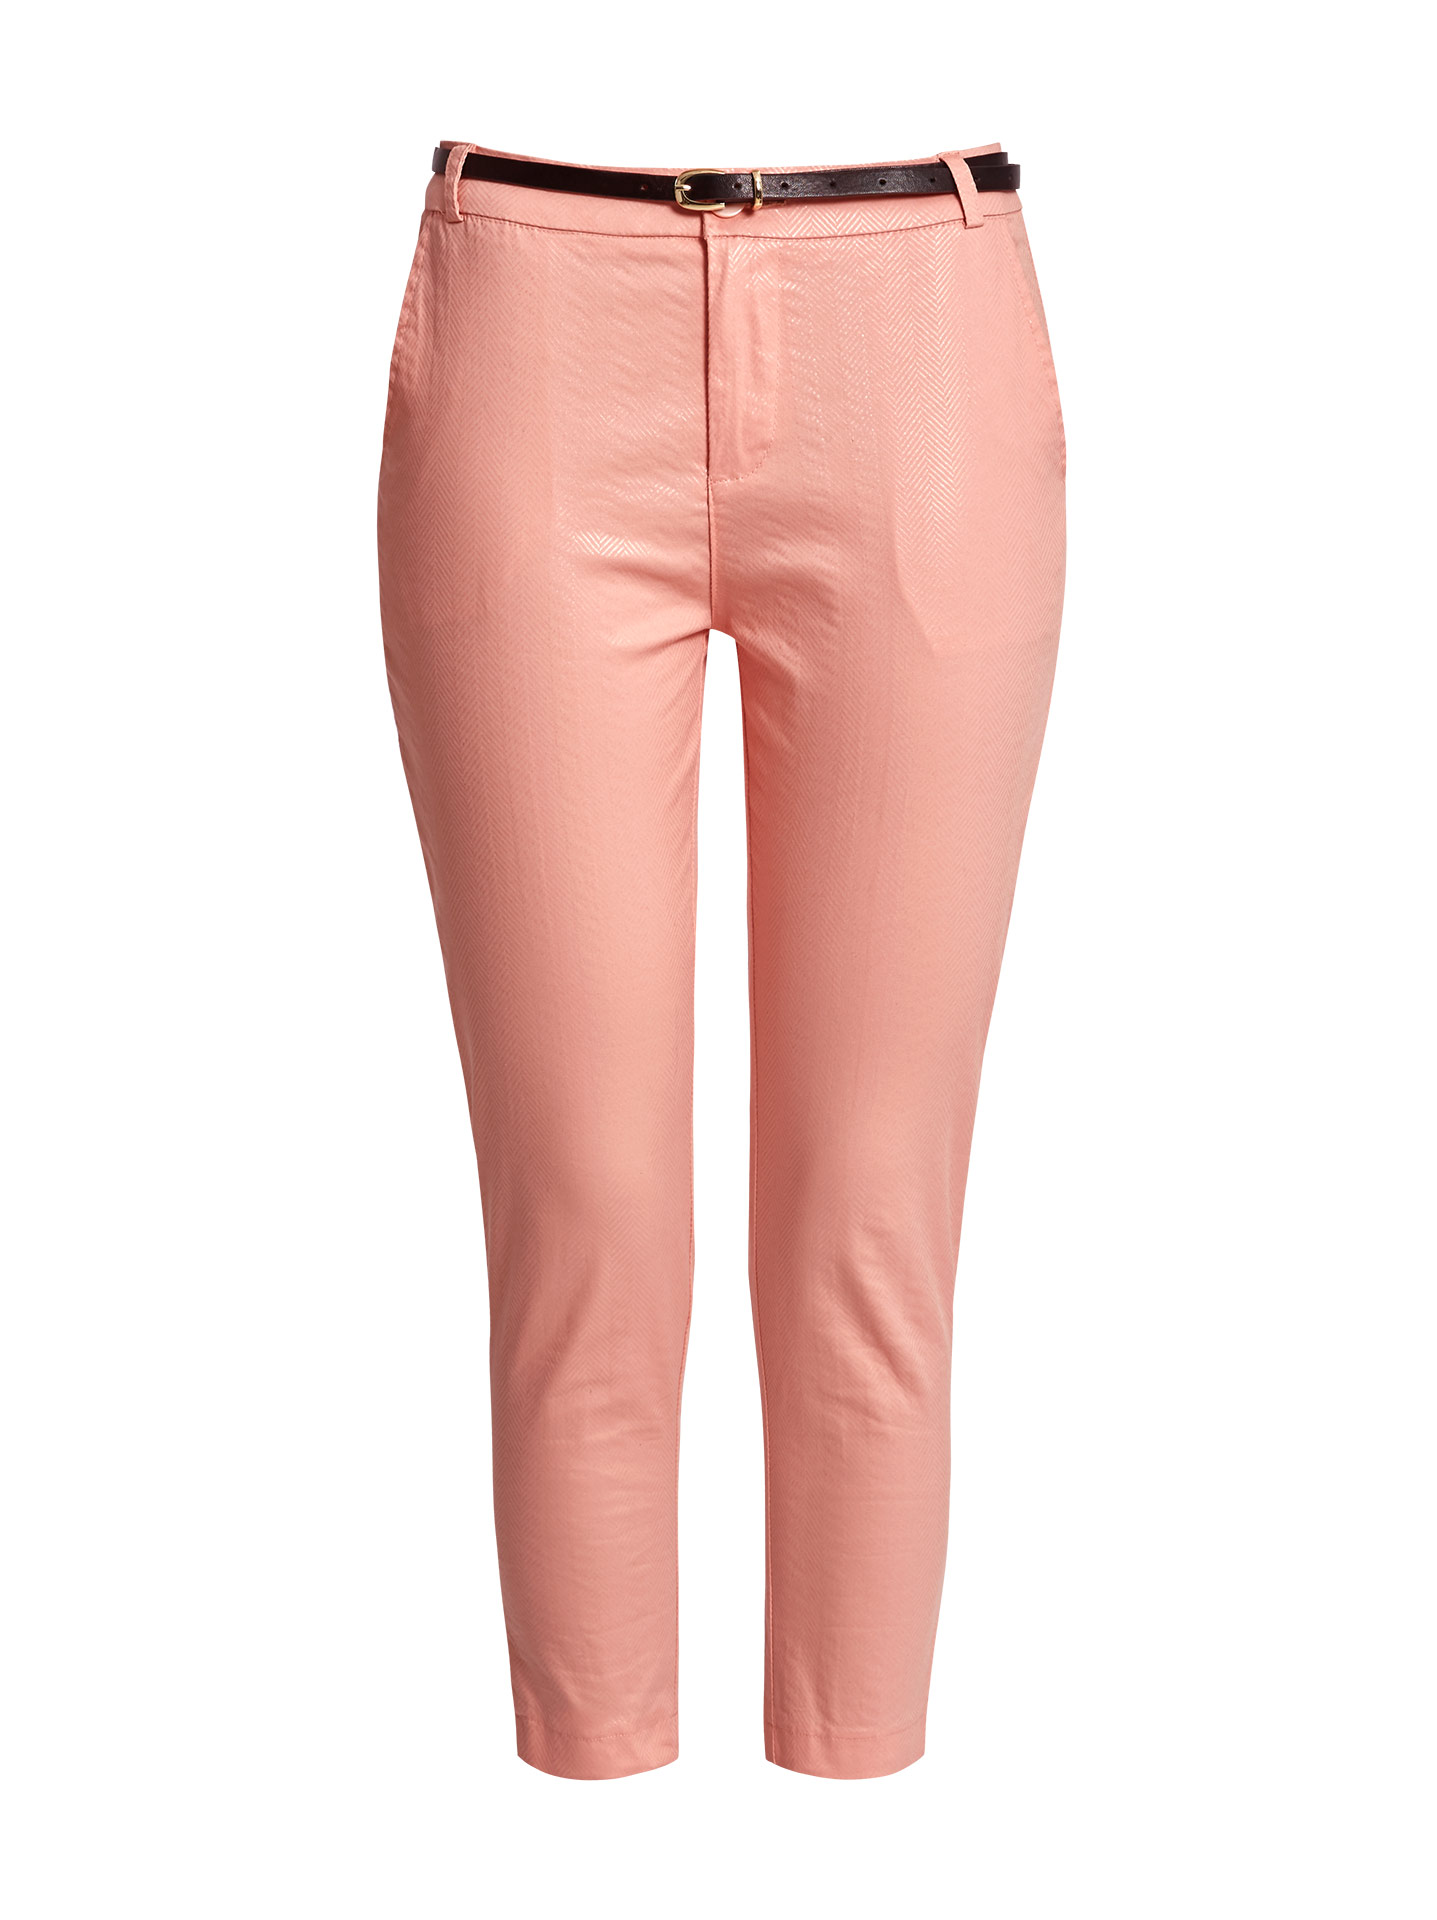 7af9acdc881f6 Shiny pattern chino trousers in pink, 16.40€ | Celestino